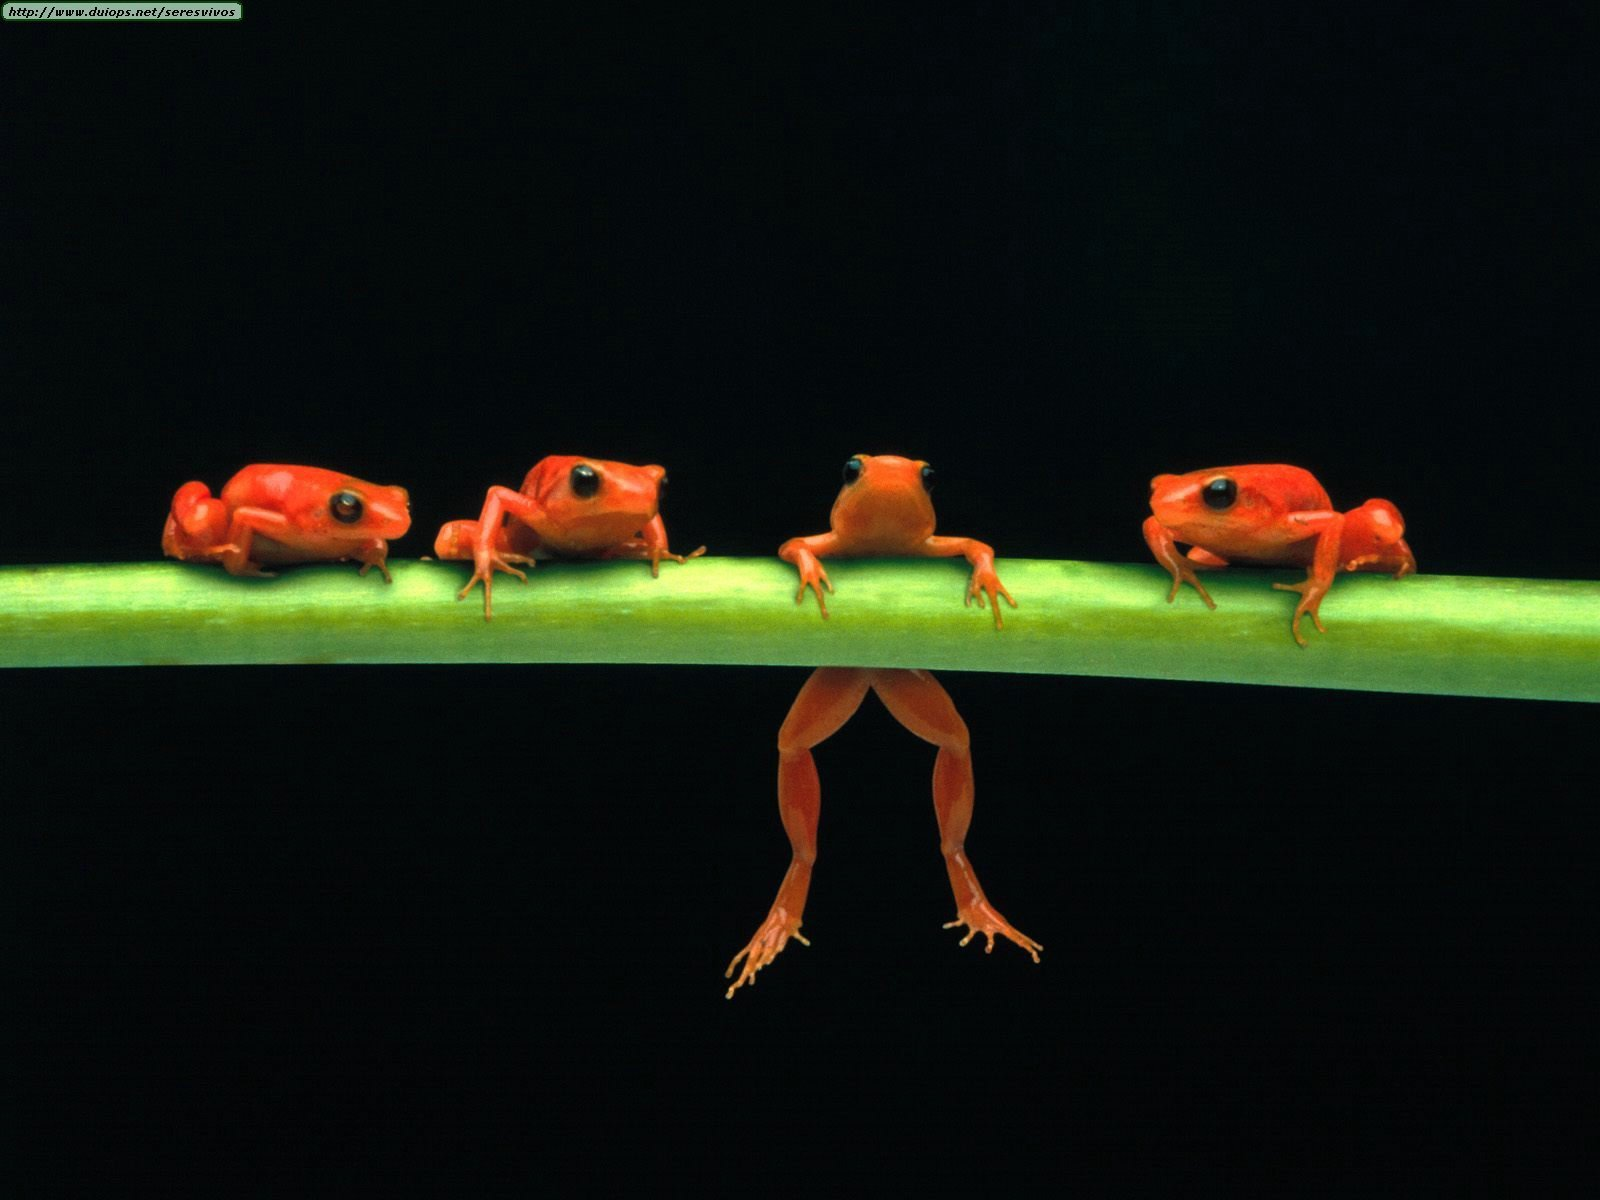 :D - frogs Wallpaper